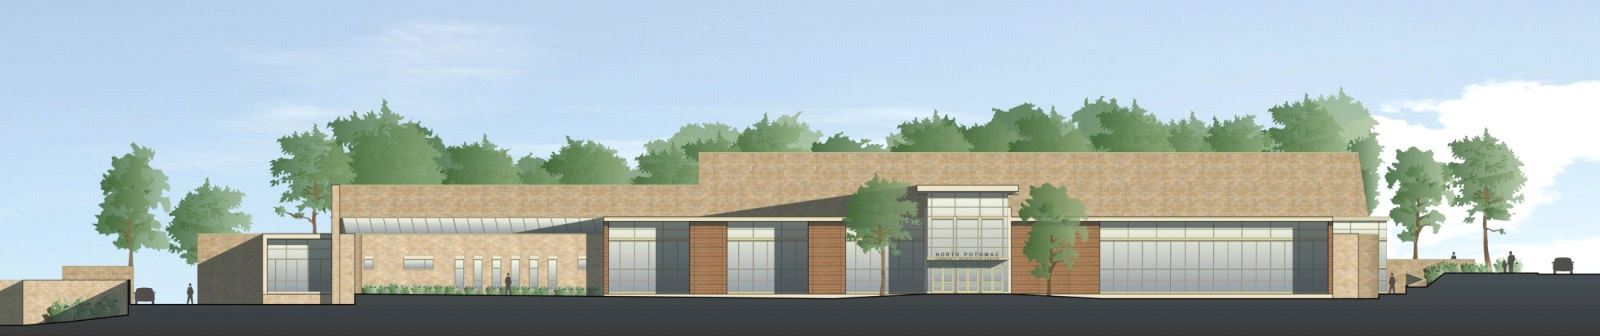 North Potomac Community Recreation Center - Main Entry Elevation